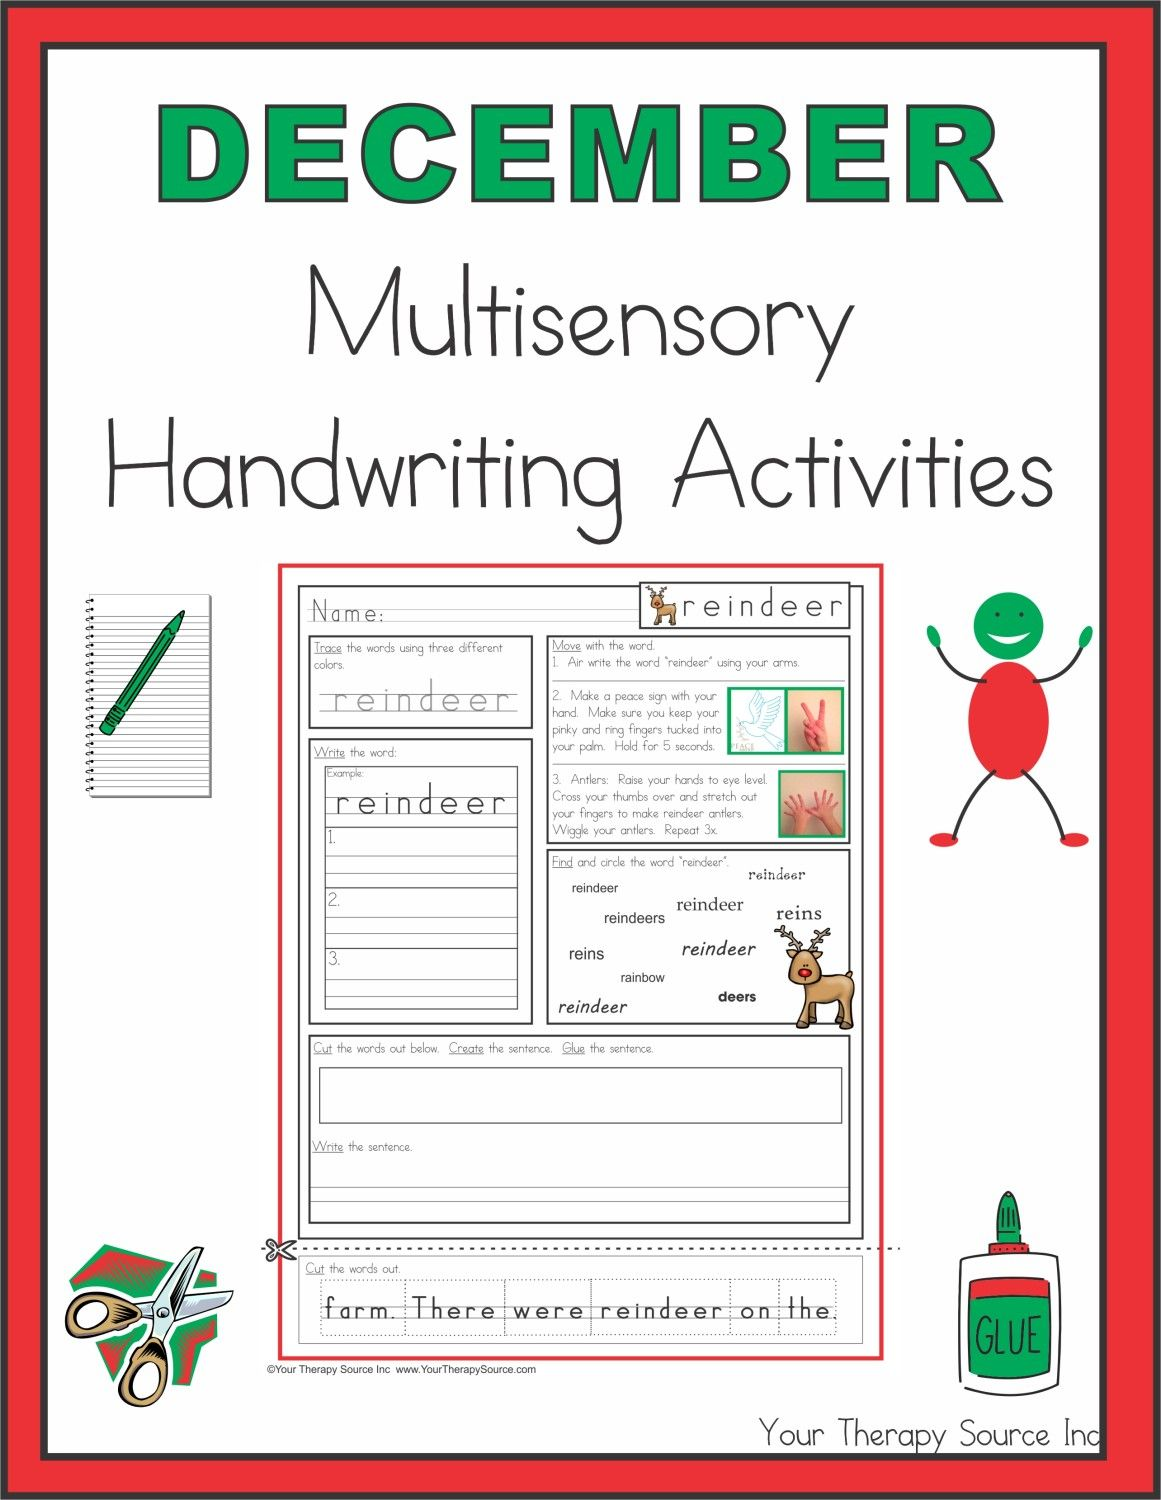 December Multisensory Handwriting Activities